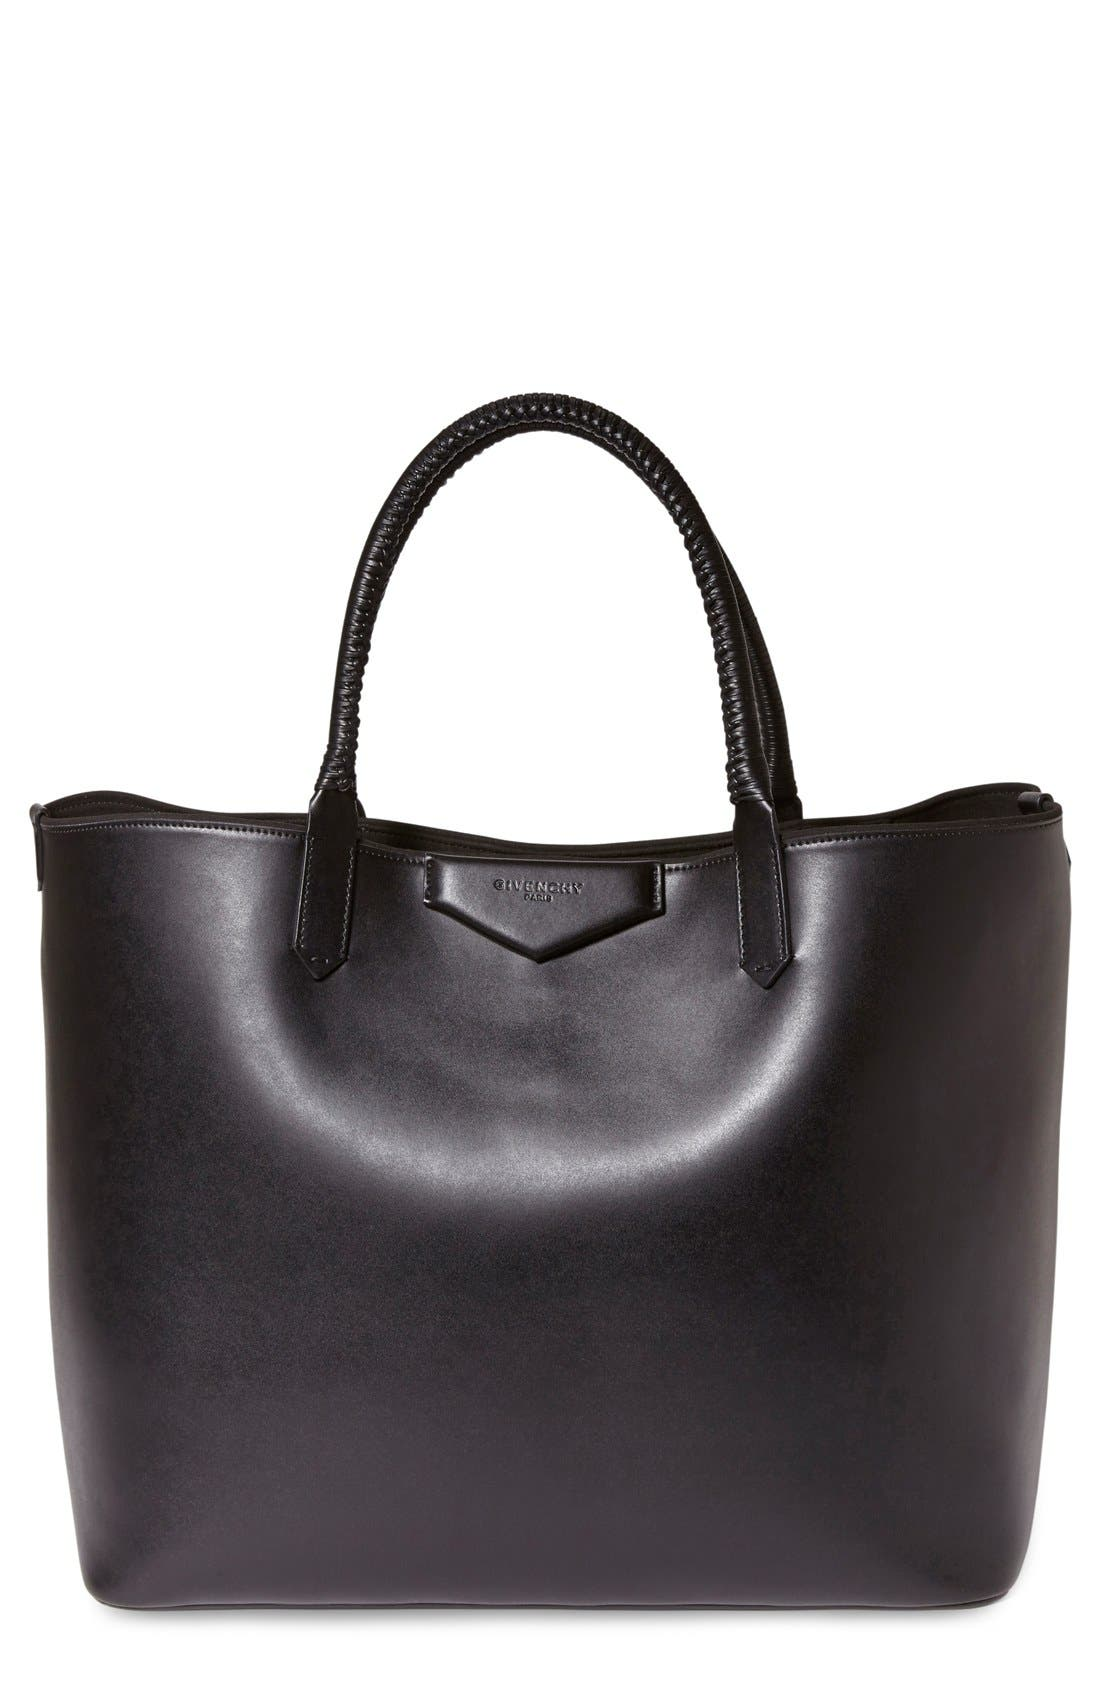 Alternate Image 1 Selected - Givenchy 'Large Antigona' Leather Shopper